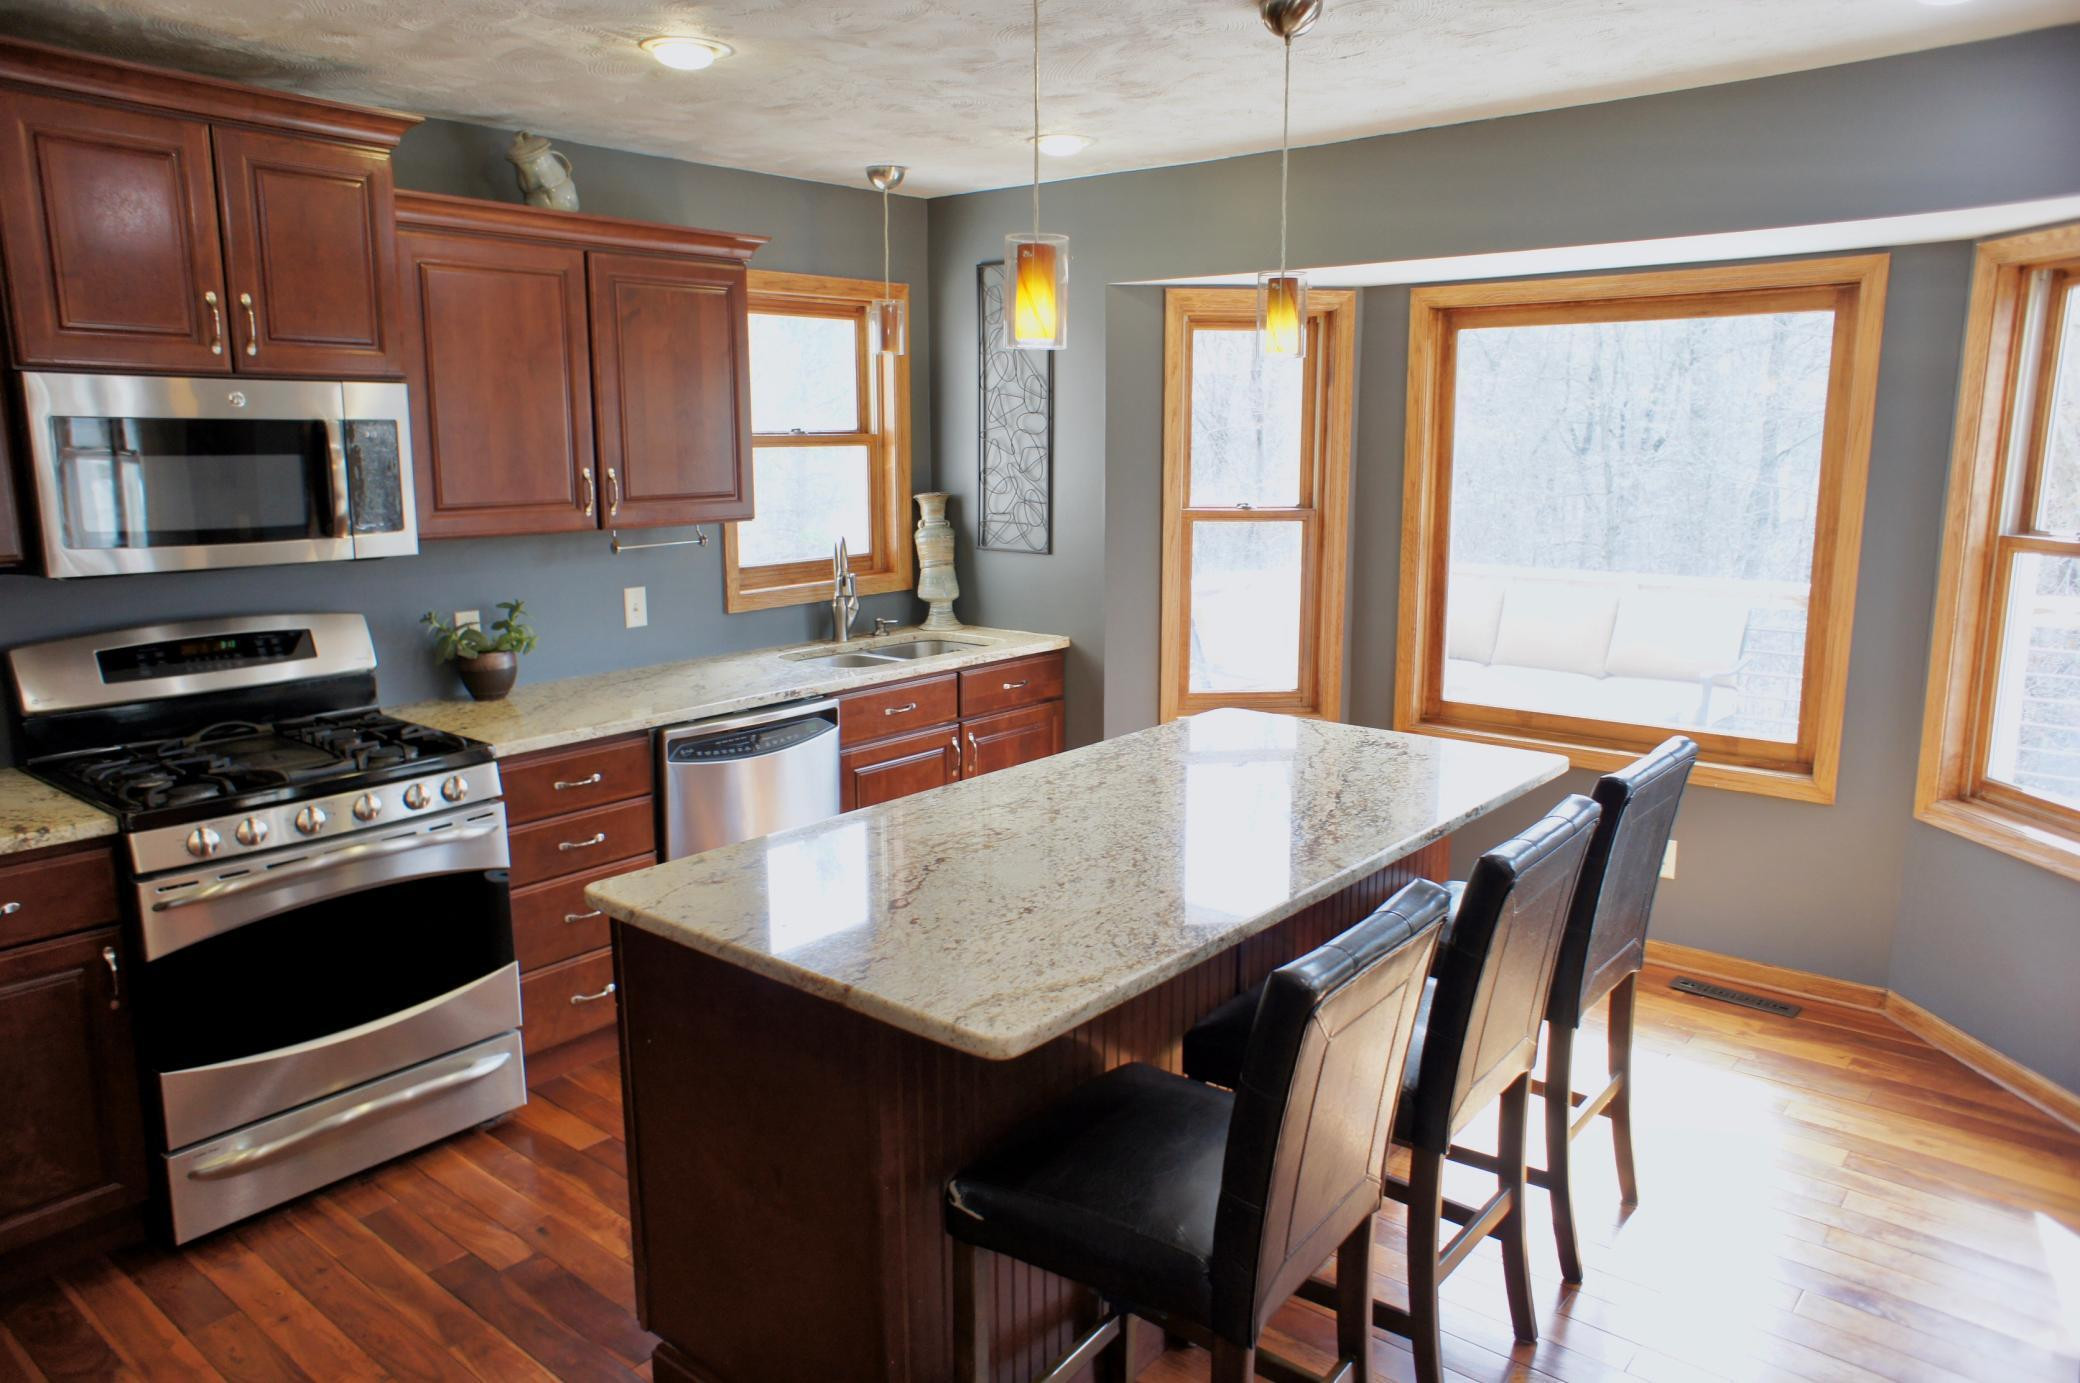 The kitchen overlooks the rear deck and landscaped grounds.